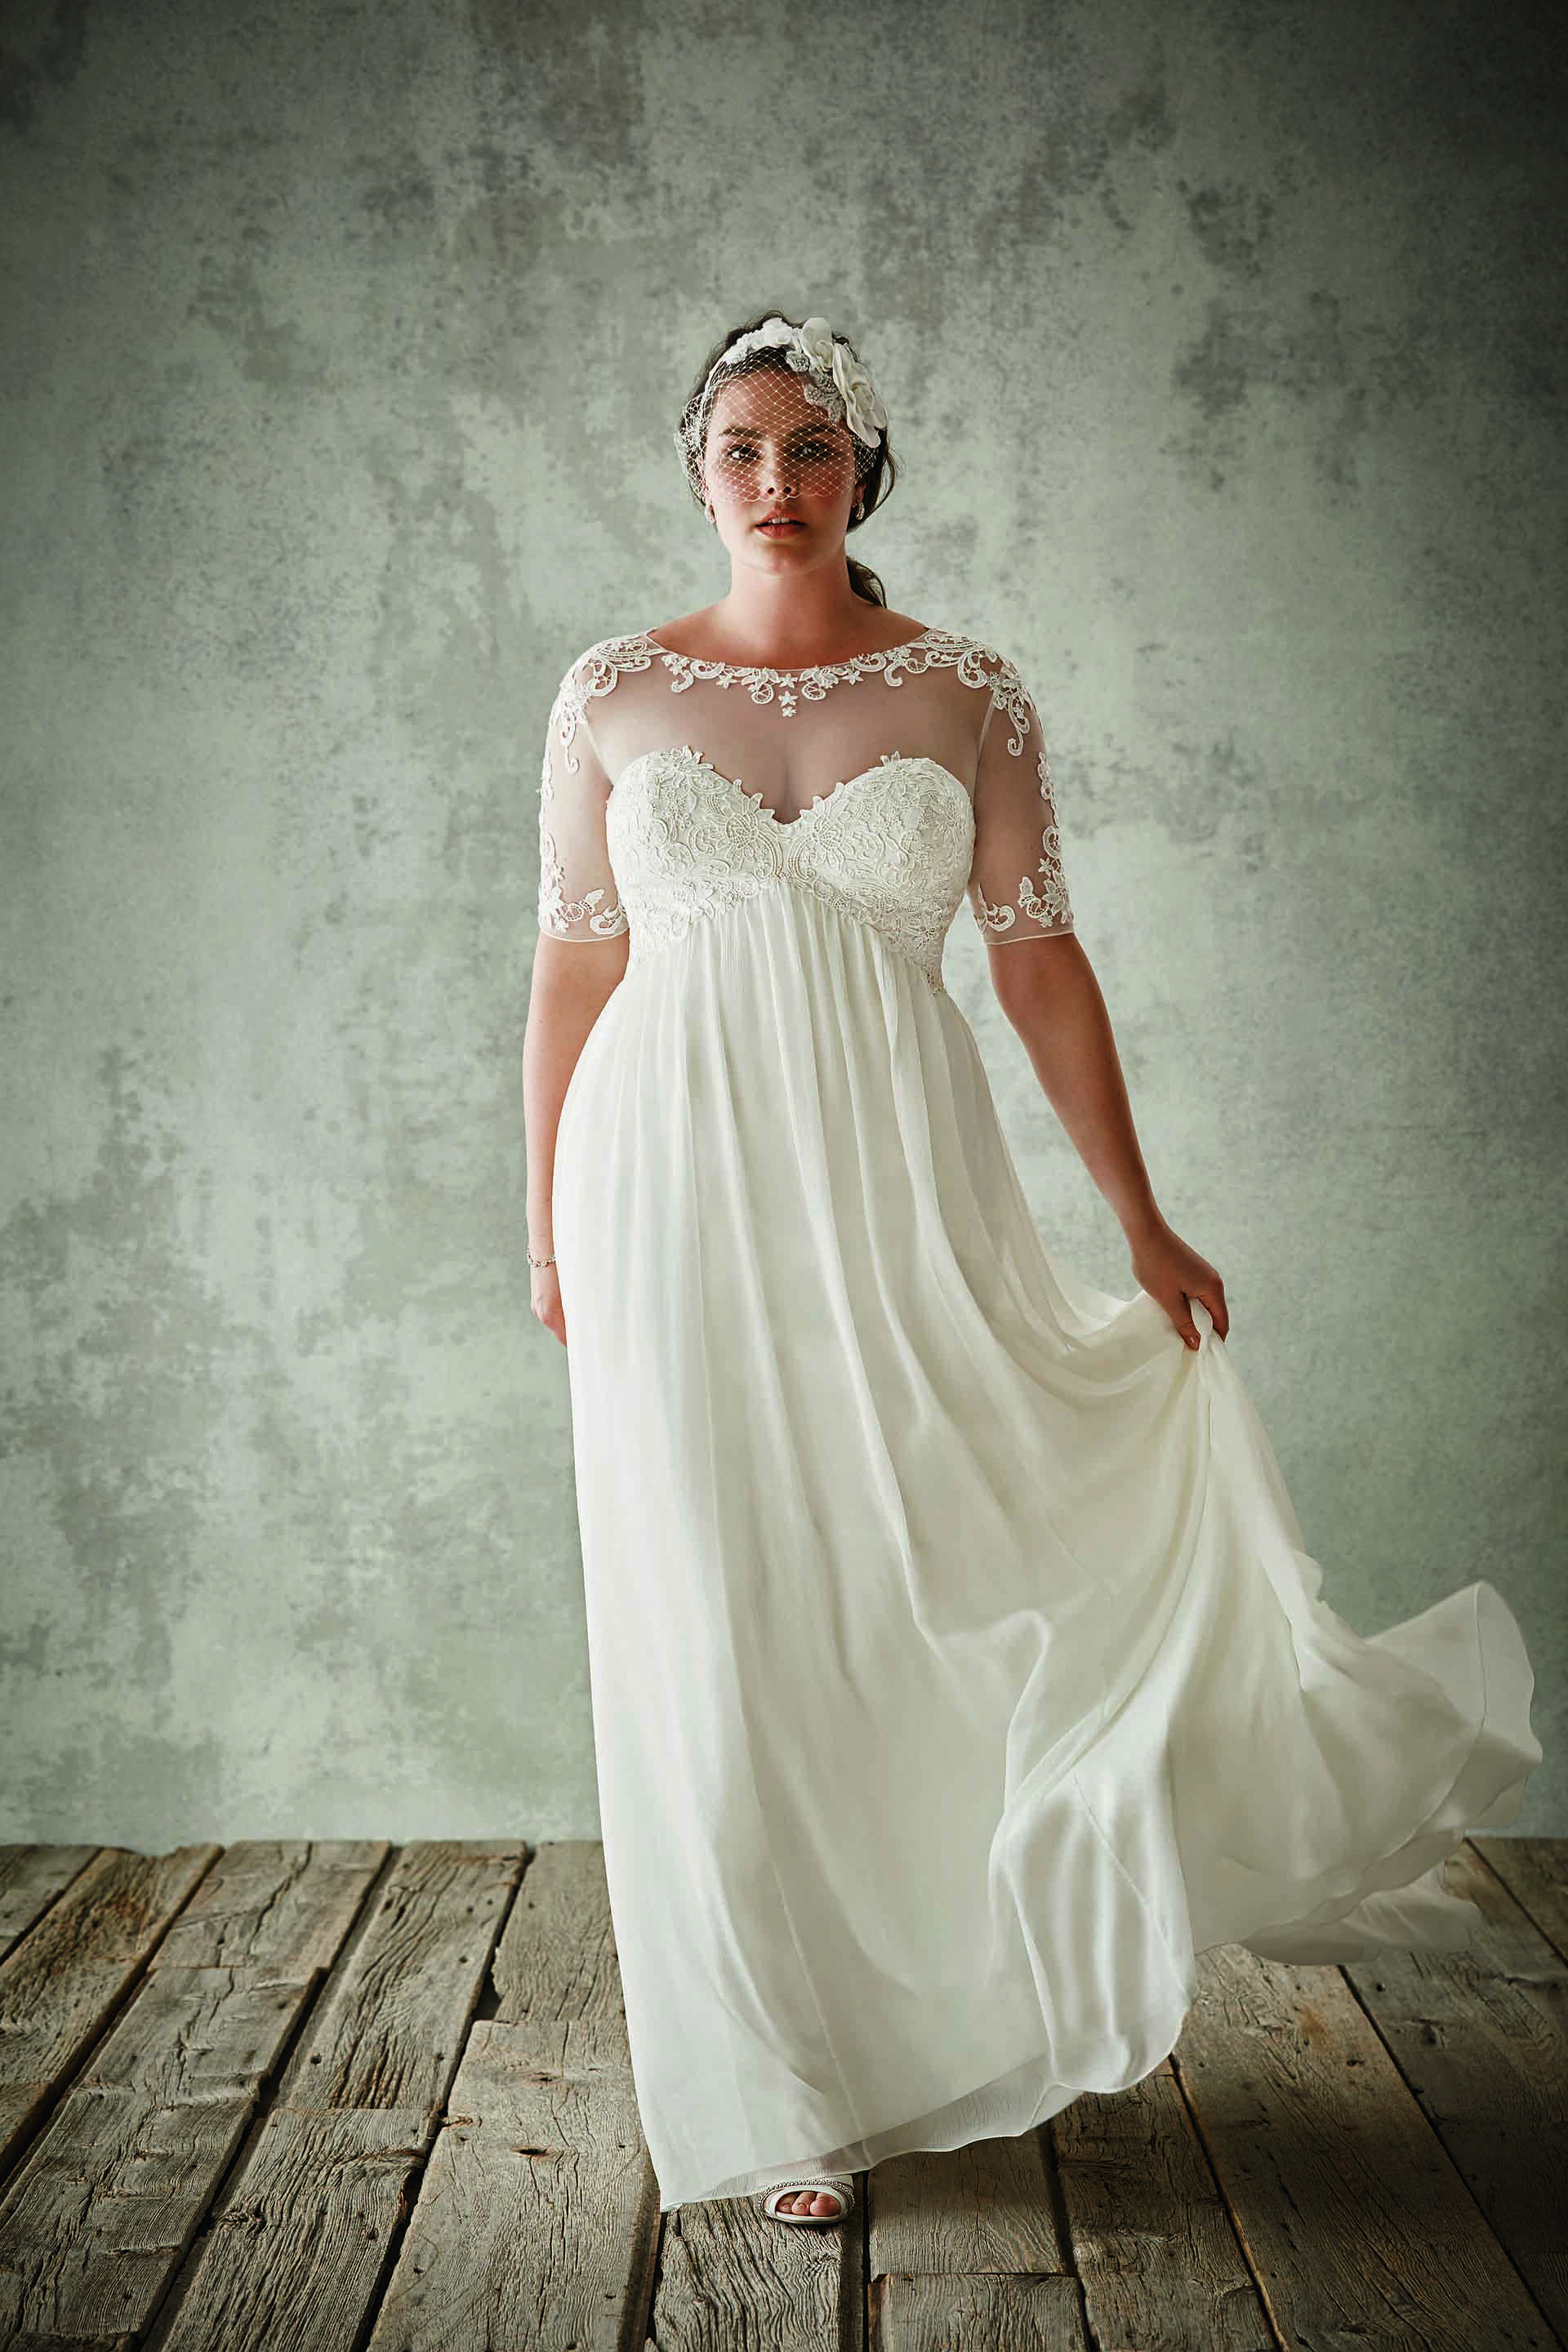 Fashion plus size wedding dresses with half sleeves sheer for Non traditional wedding dresses plus size